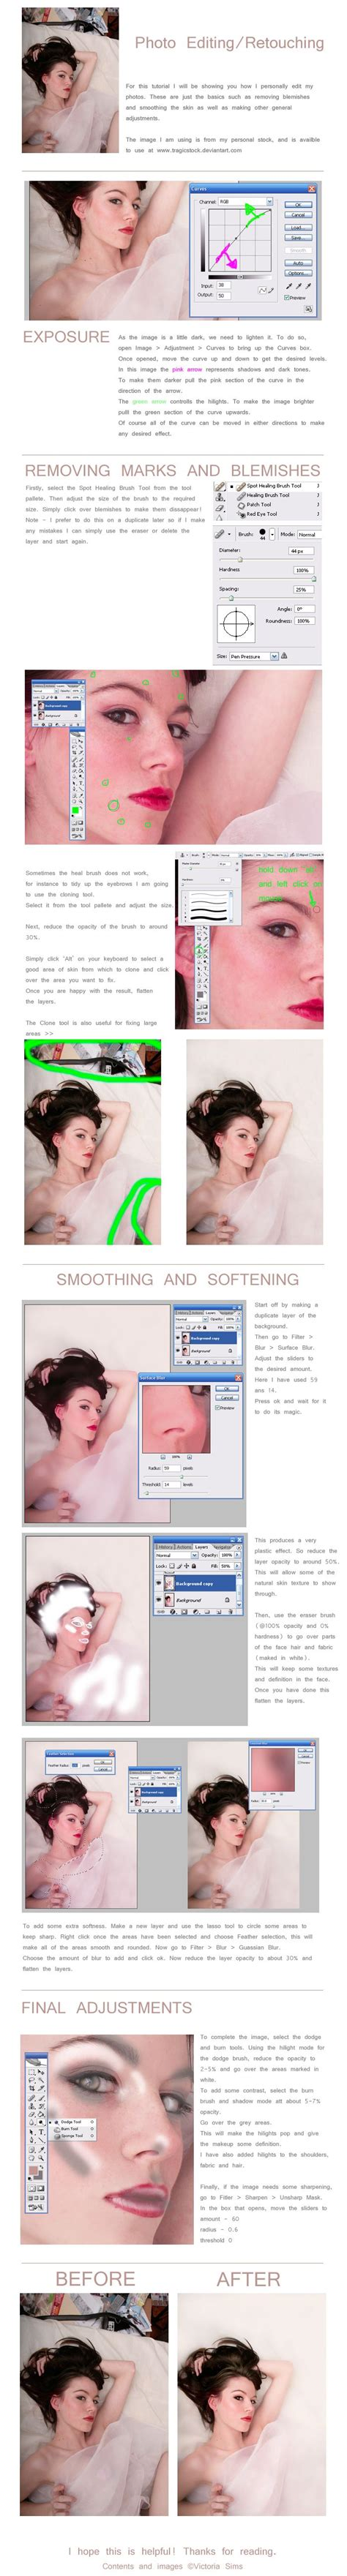 tutorial photoshop photo editing just a basic editing tutorial using adobe photoshop